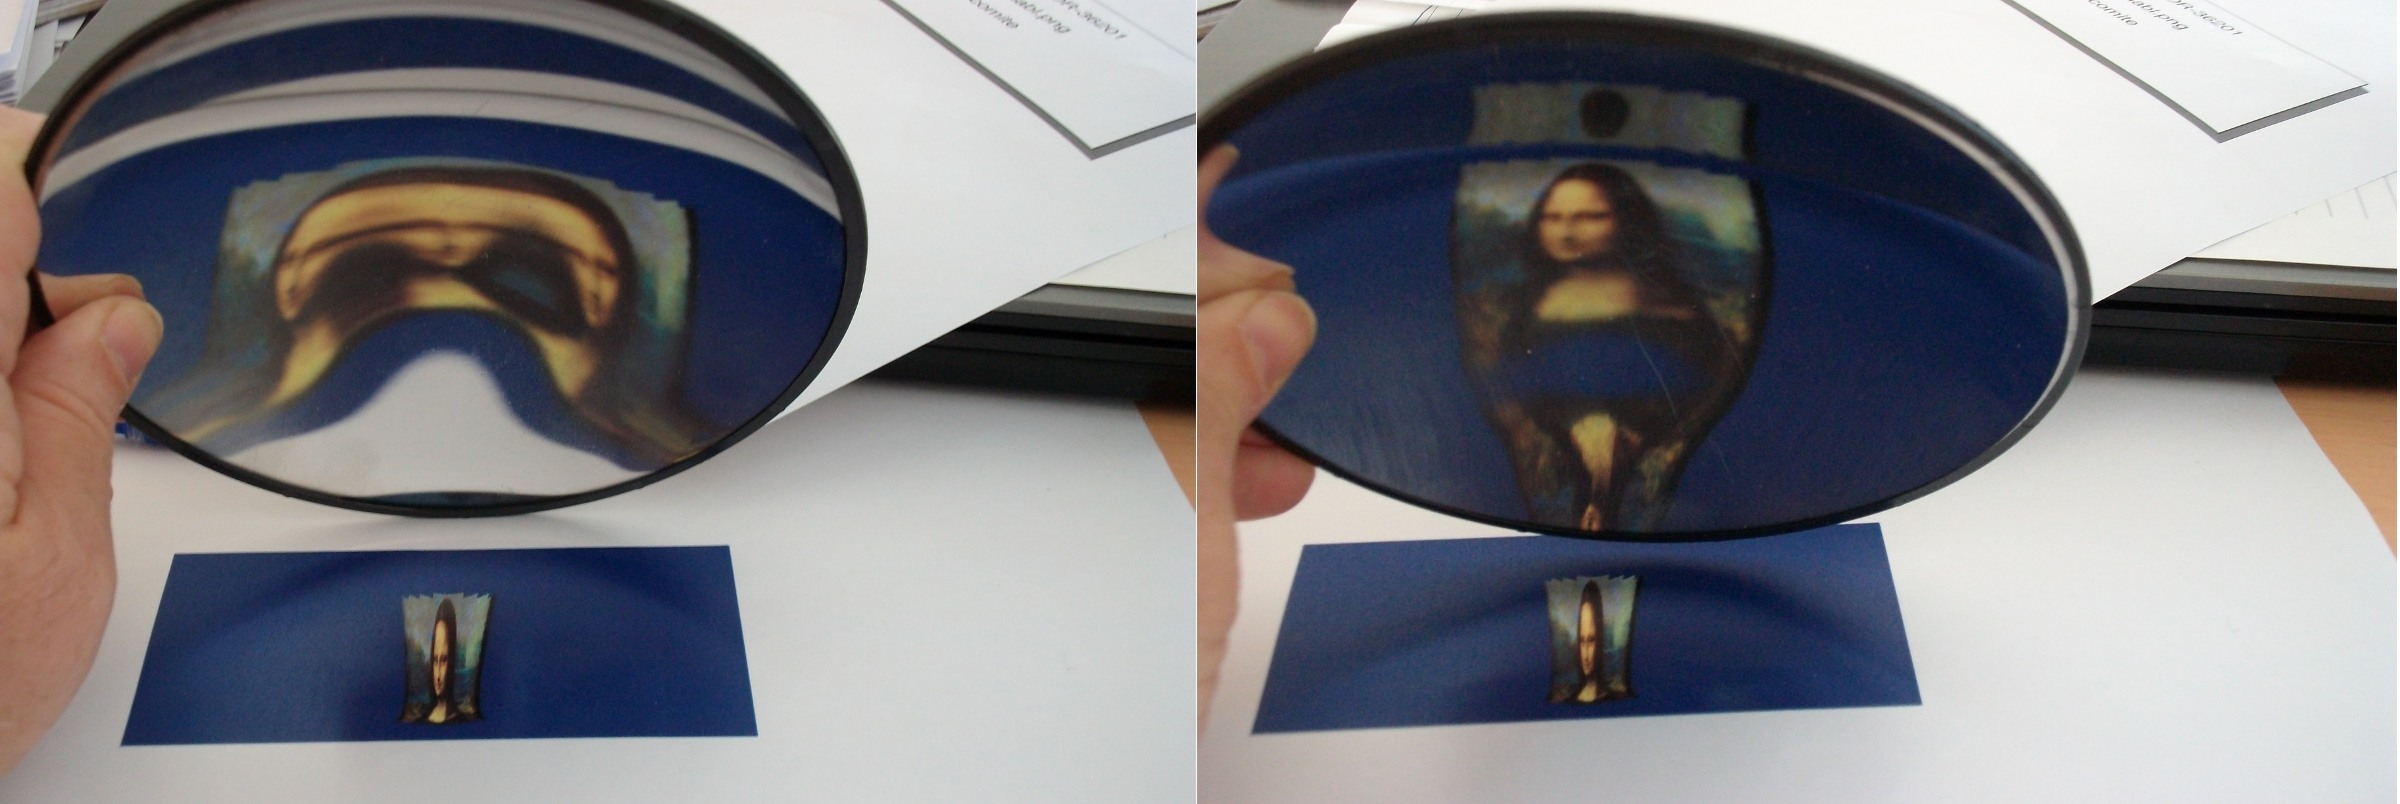 Title: Anamorphosis in a concave paraboloidal mirror | Author: fdecomite | Source: Own work | License: CC BY-NC-ND 2.0